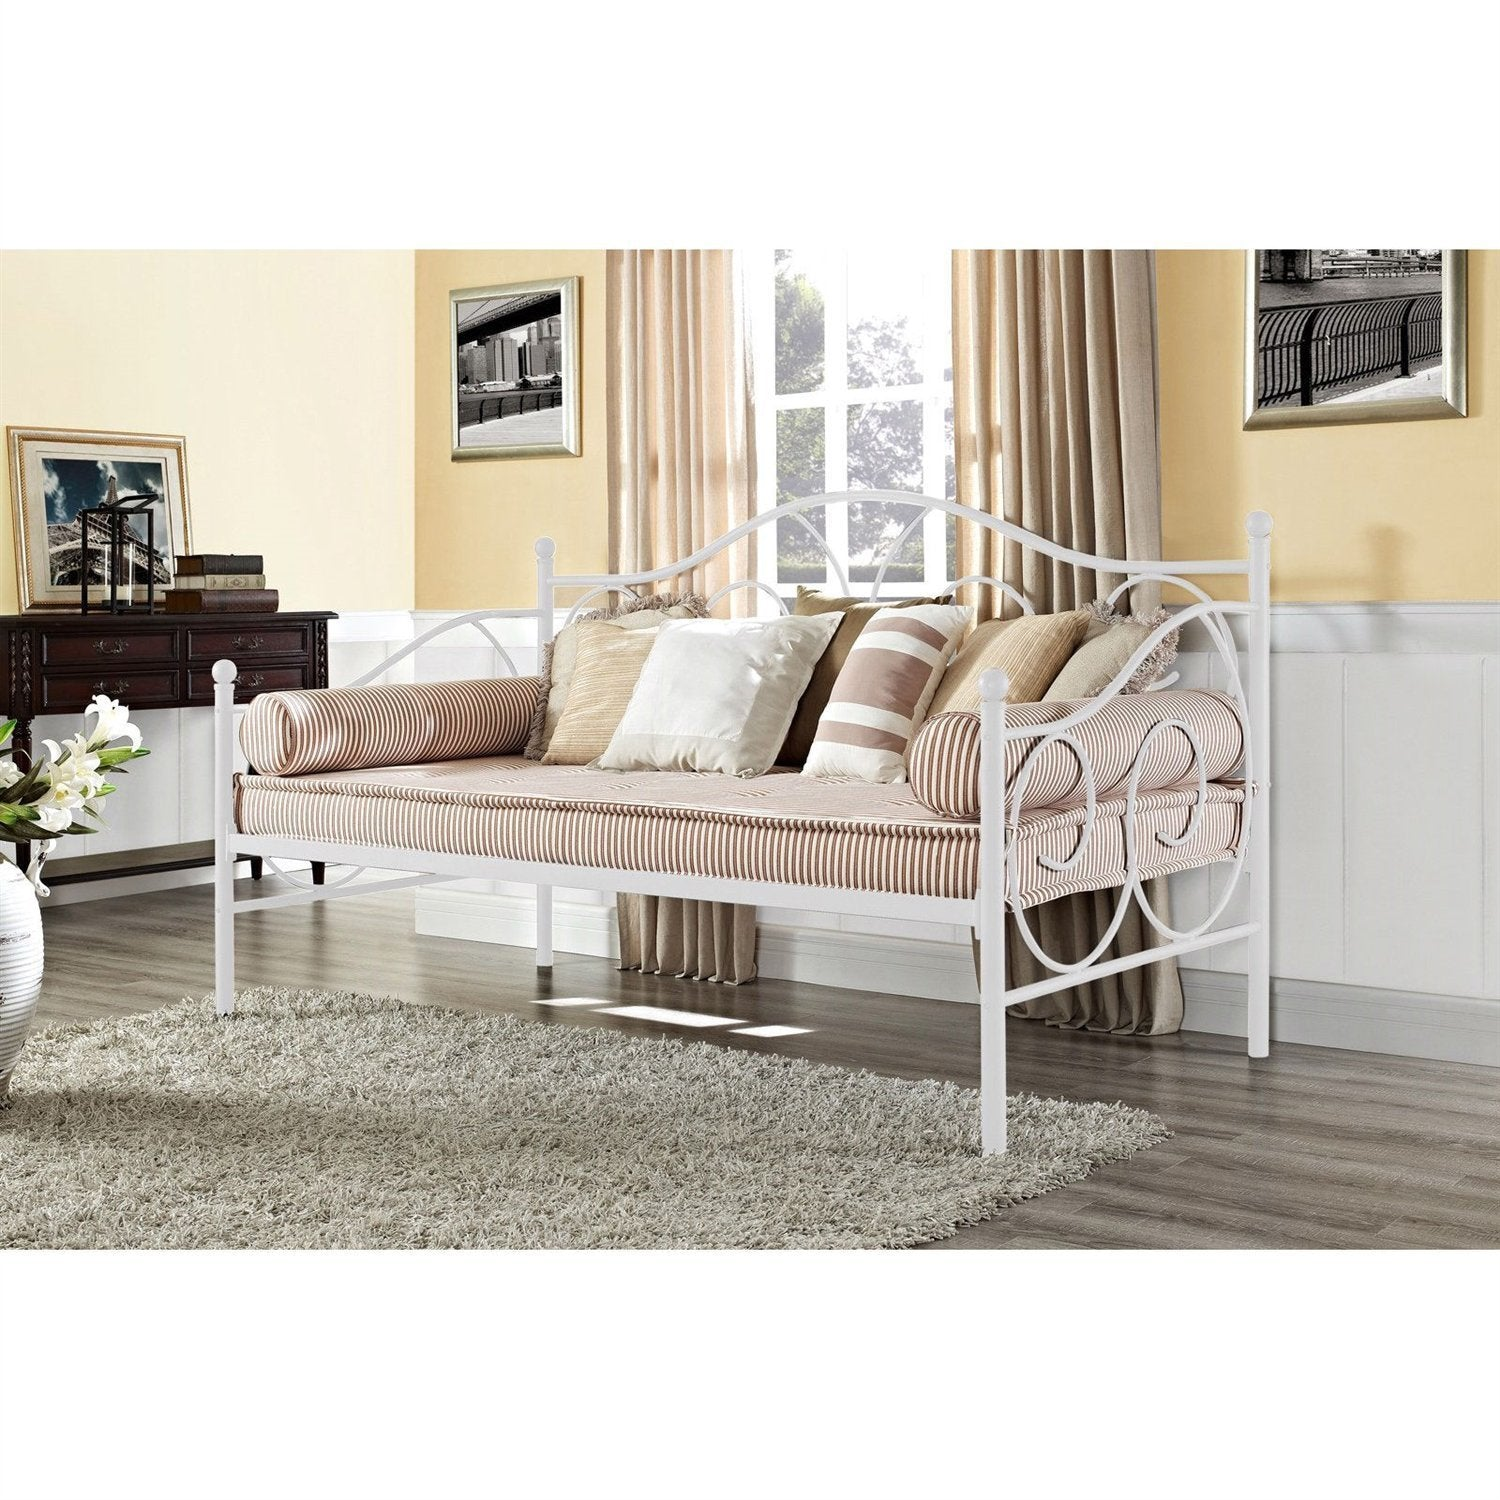 Lawson Twin Size Daybed.